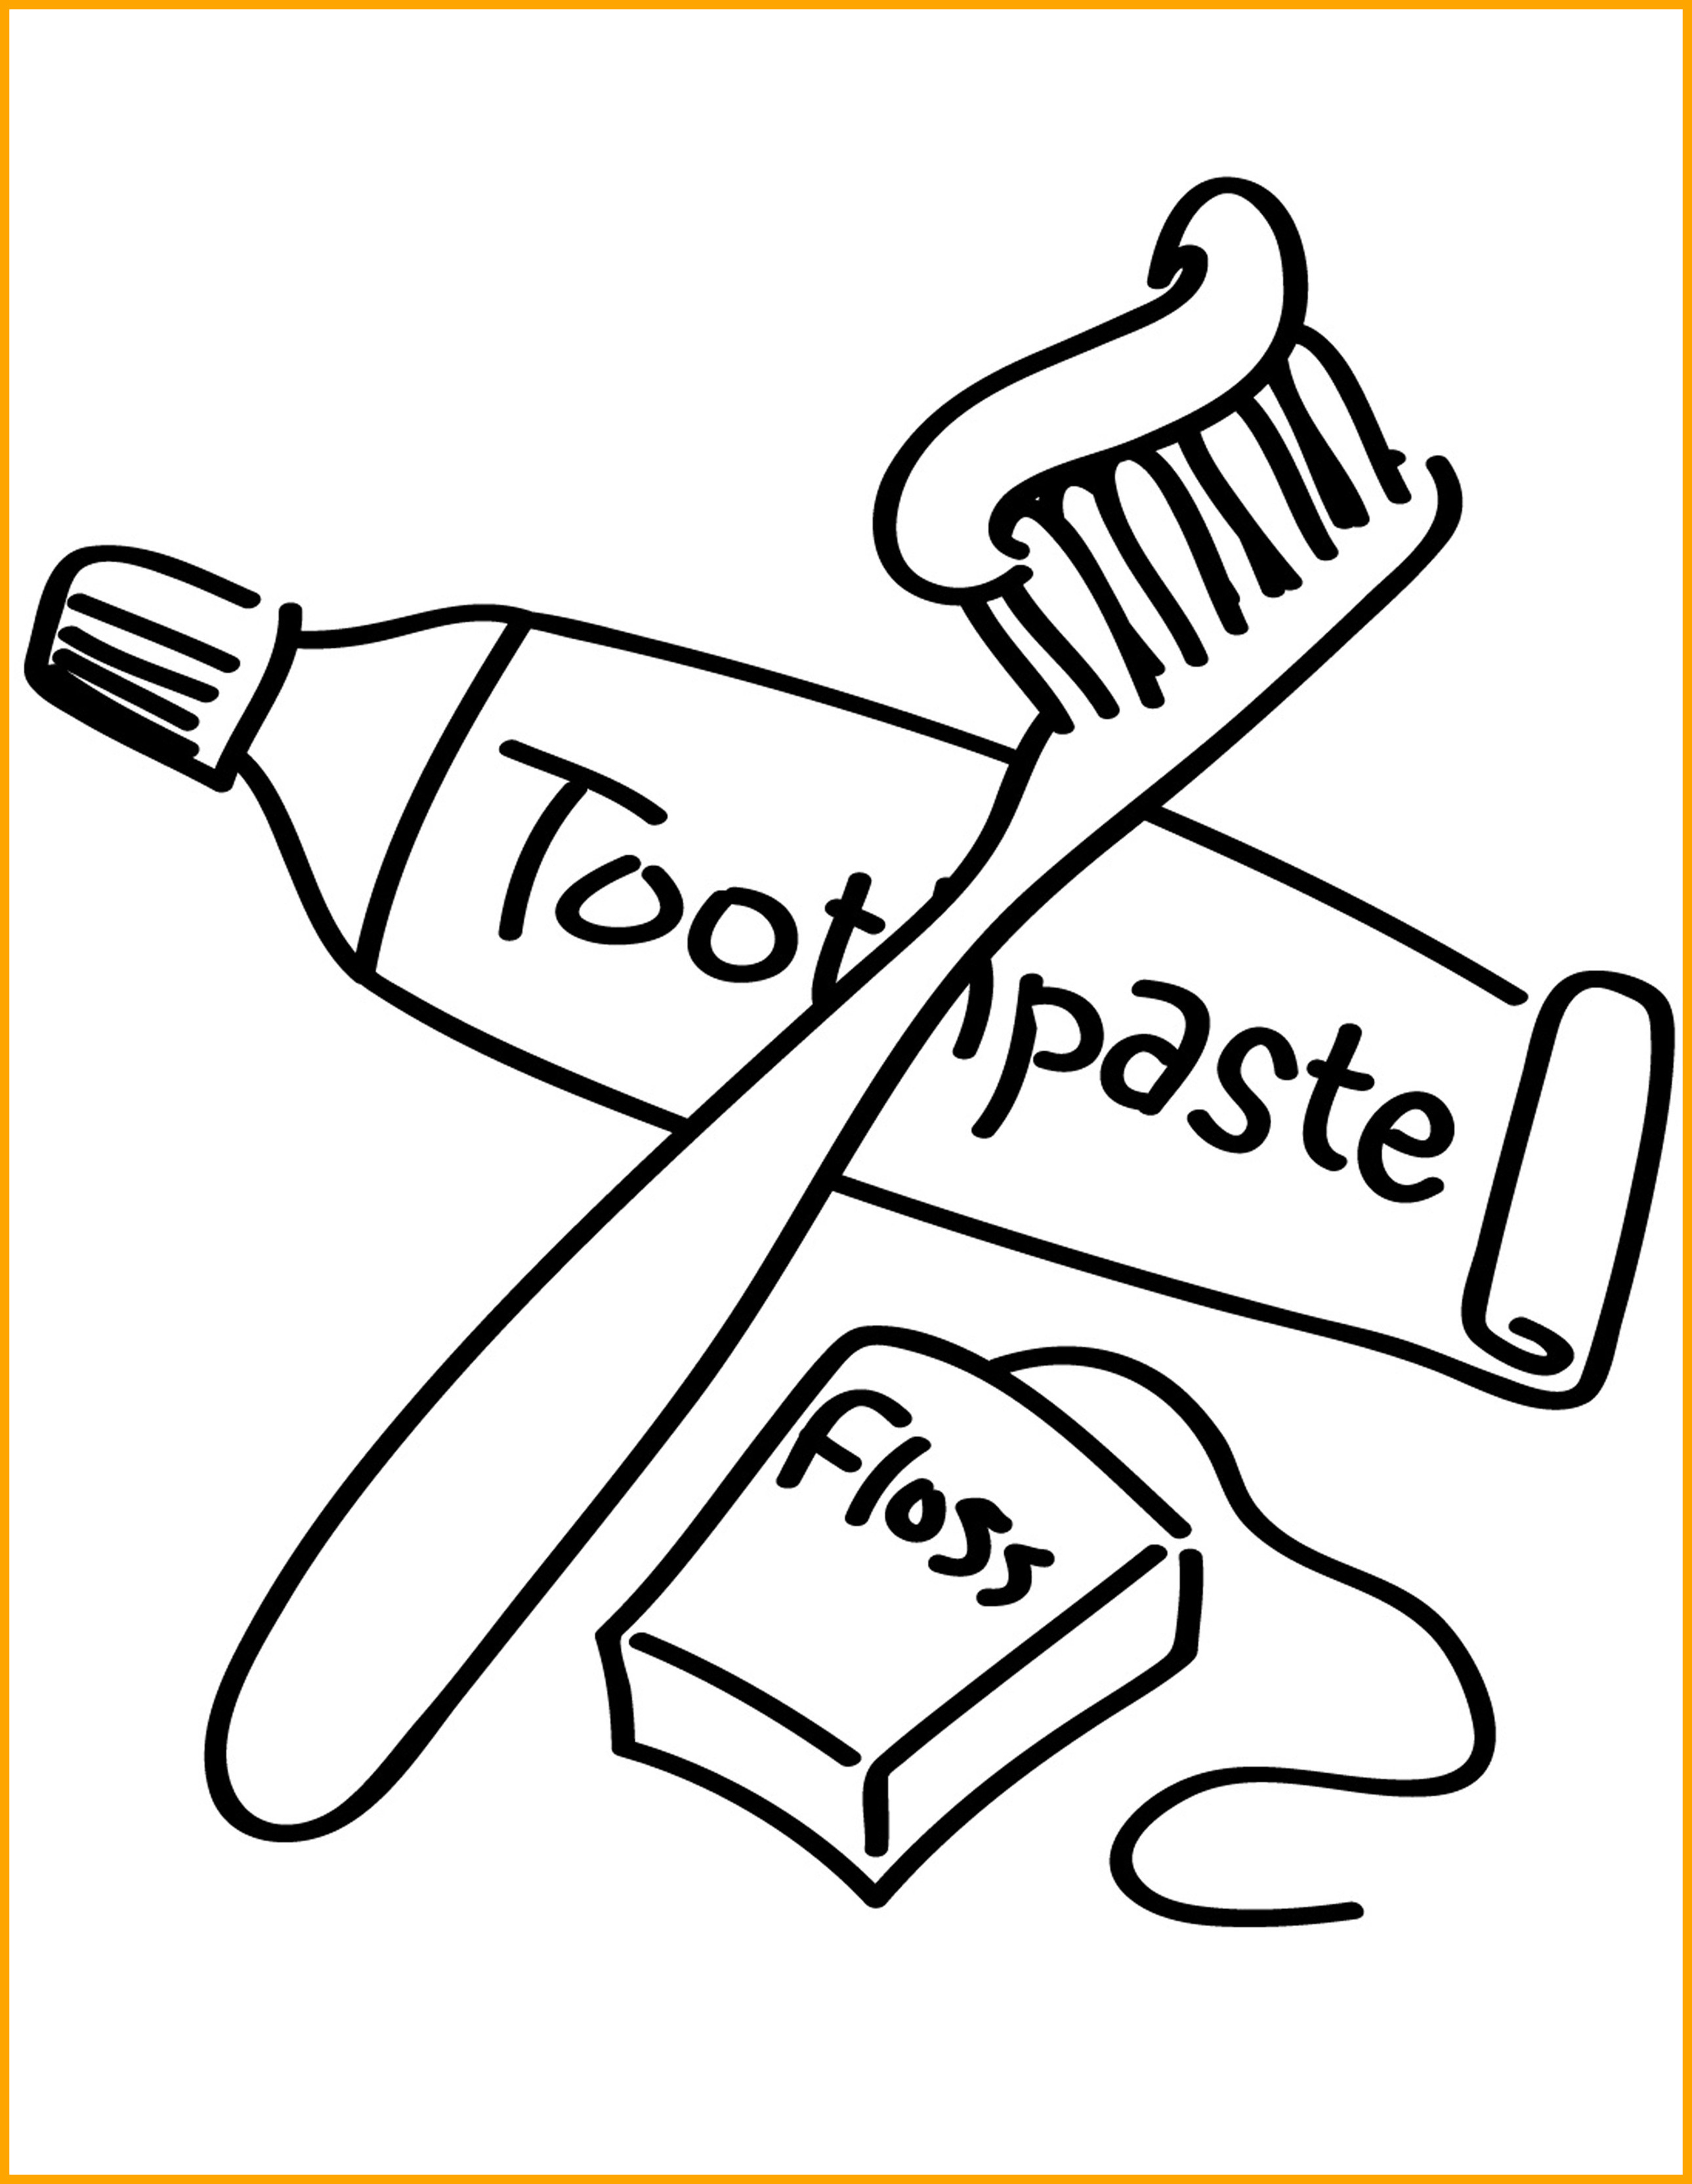 Best Dental Coloring Pages Printable for Kids Pics Concept and Trend Collection Of Coloring Pages tooth Coloring Pages Unique Happy Brush Dental Page Gallery